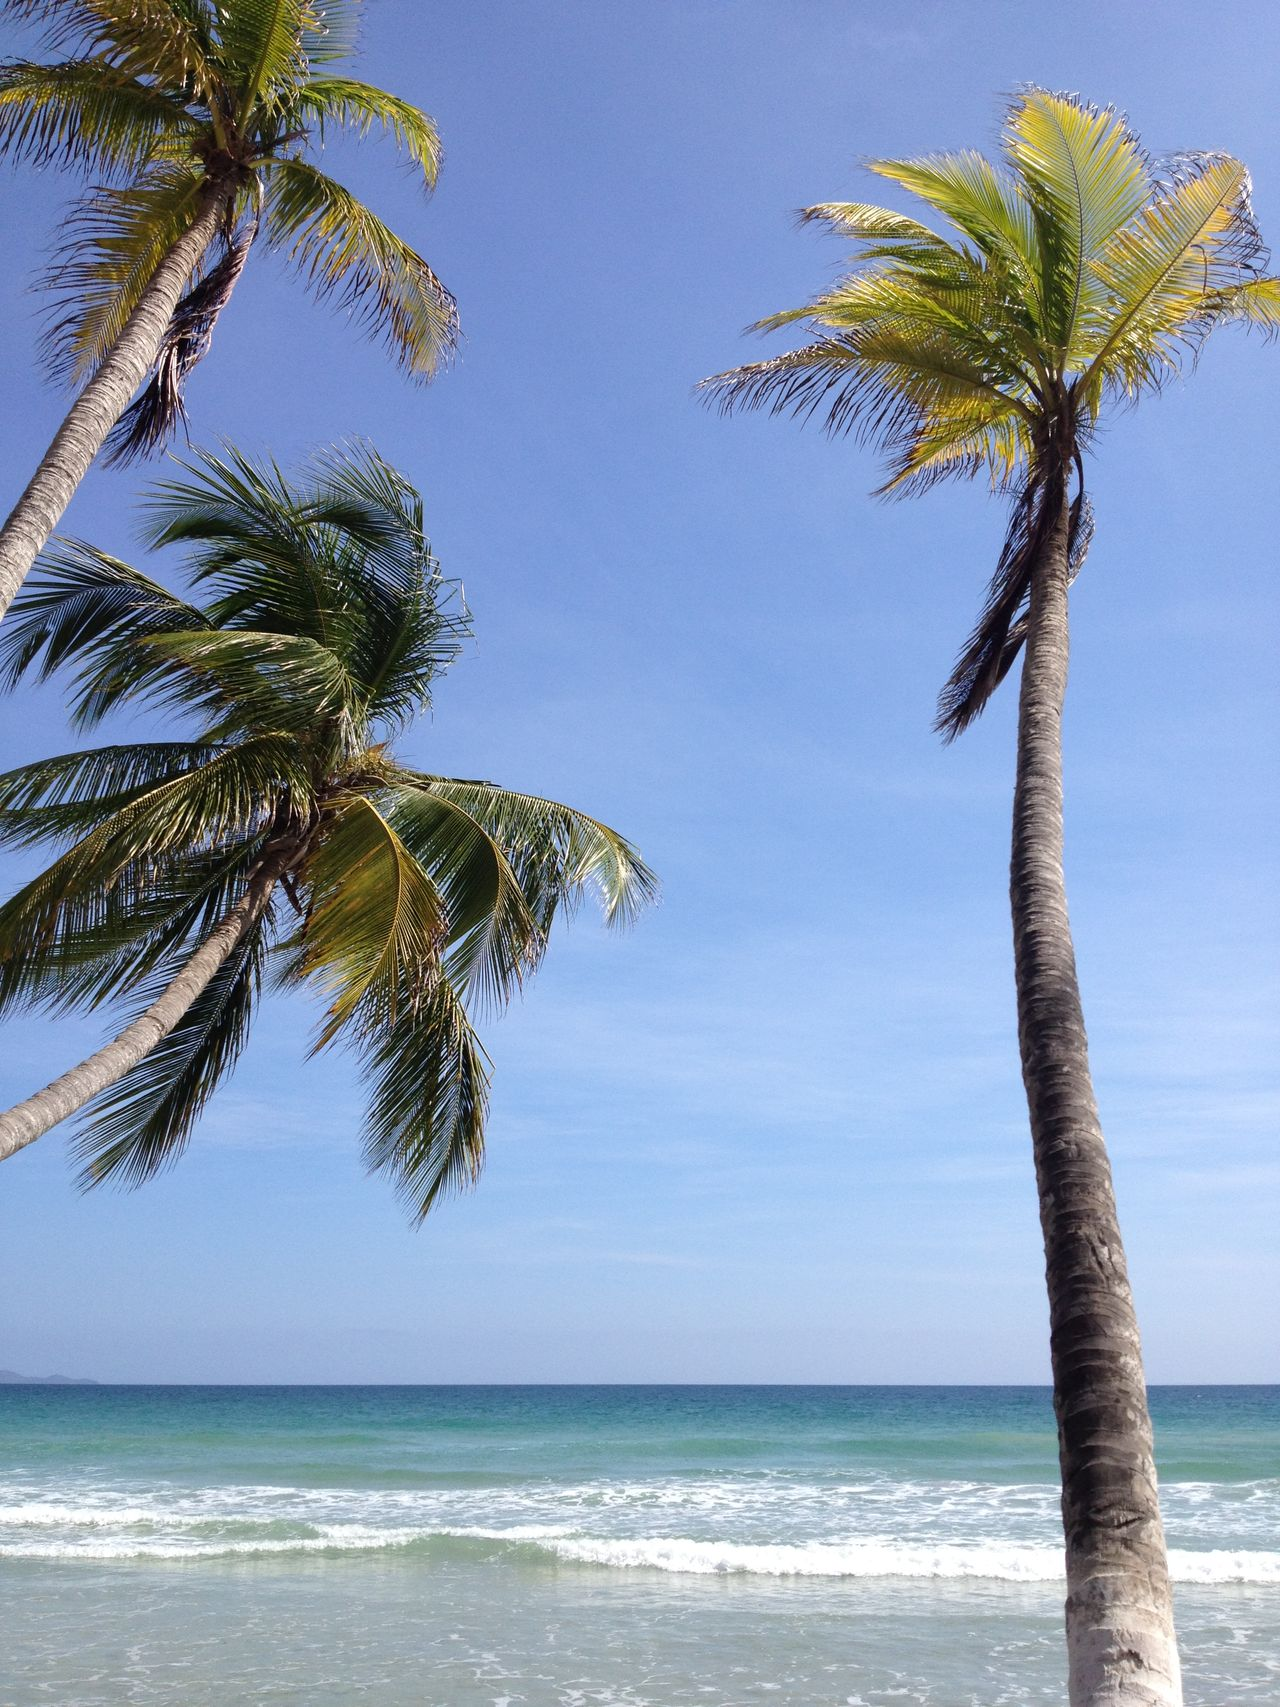 Beautiful stock photos of palm tree, Pampatar, Venezuela, beauty in nature, blue